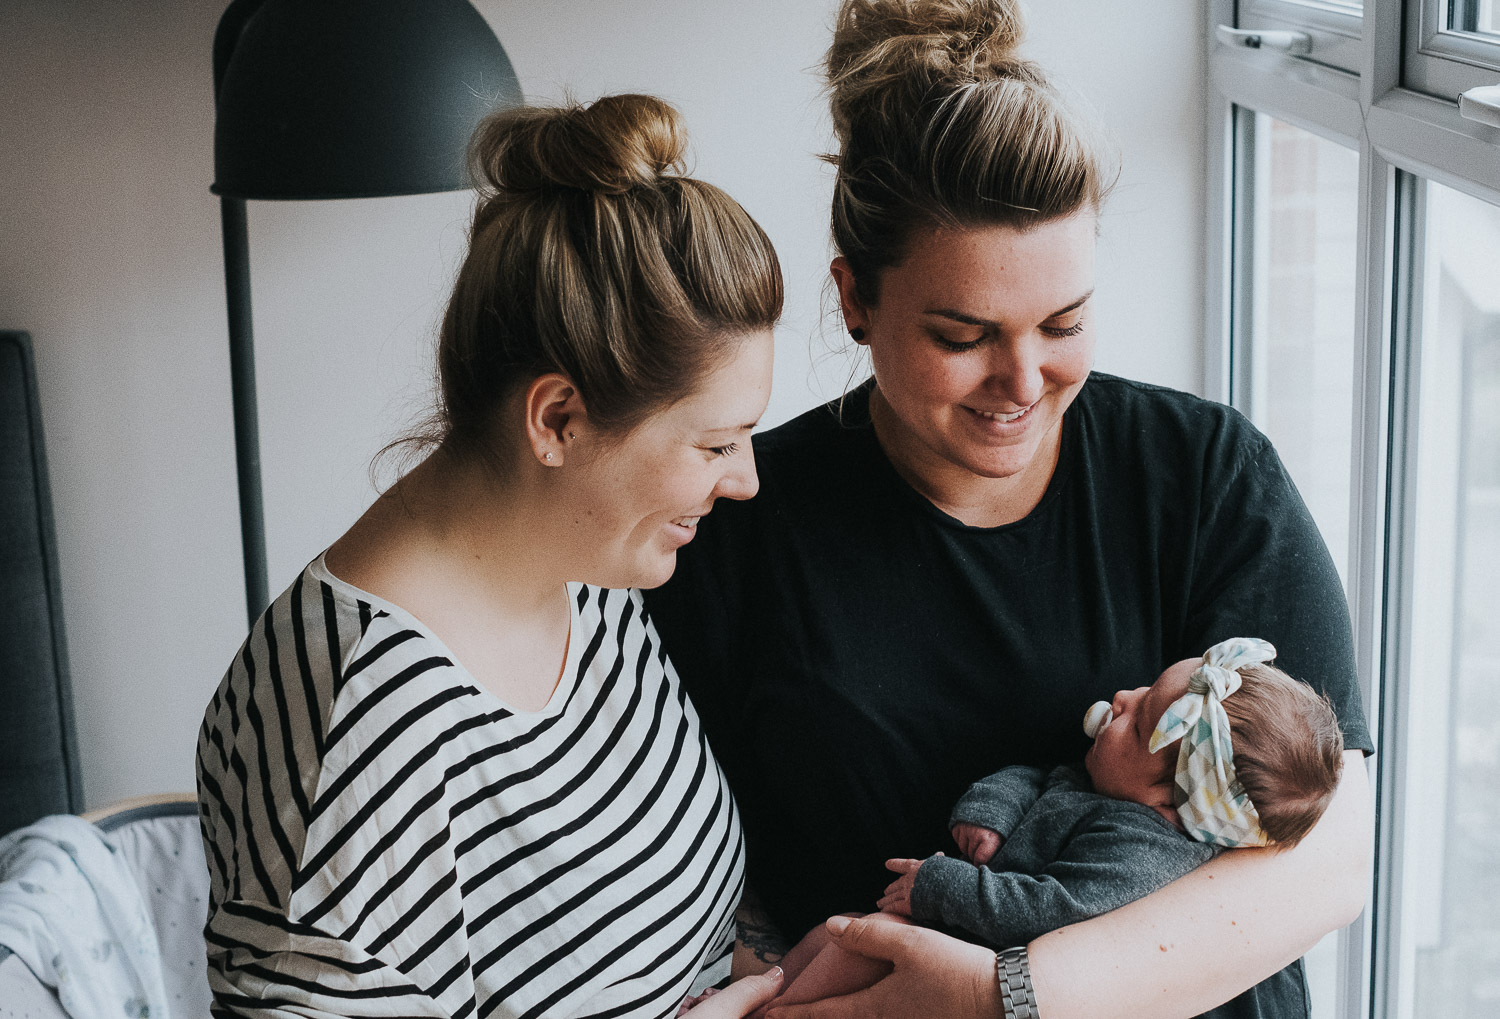 SAME SEX FAMILY PHOTOGRAPHY NEWBORN BABY LESBIAN MUMS MOTHERS